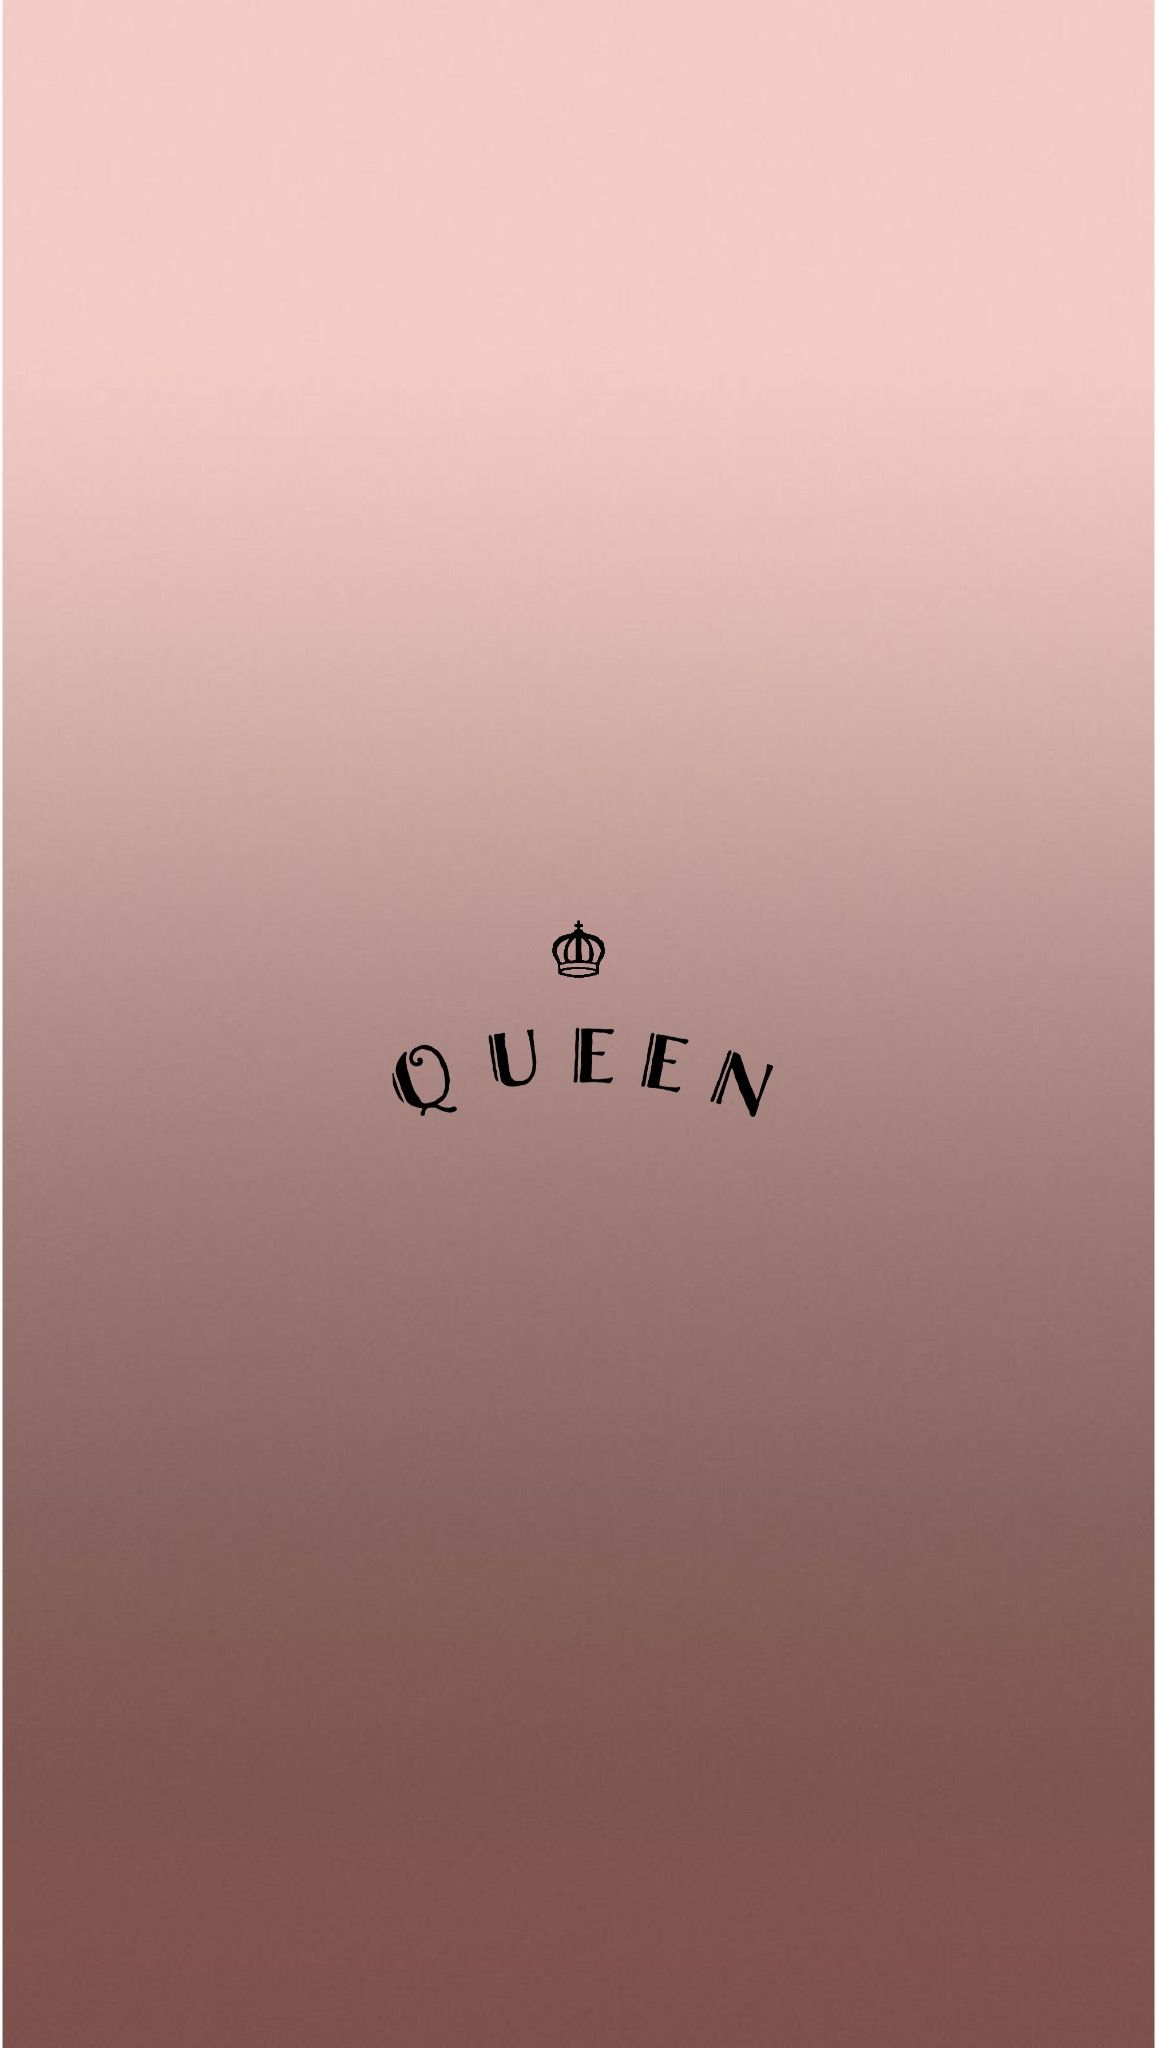 Iphone wallpaper tumblr queen - Rose Gold Queen Iphone Wallpaper By Evaland